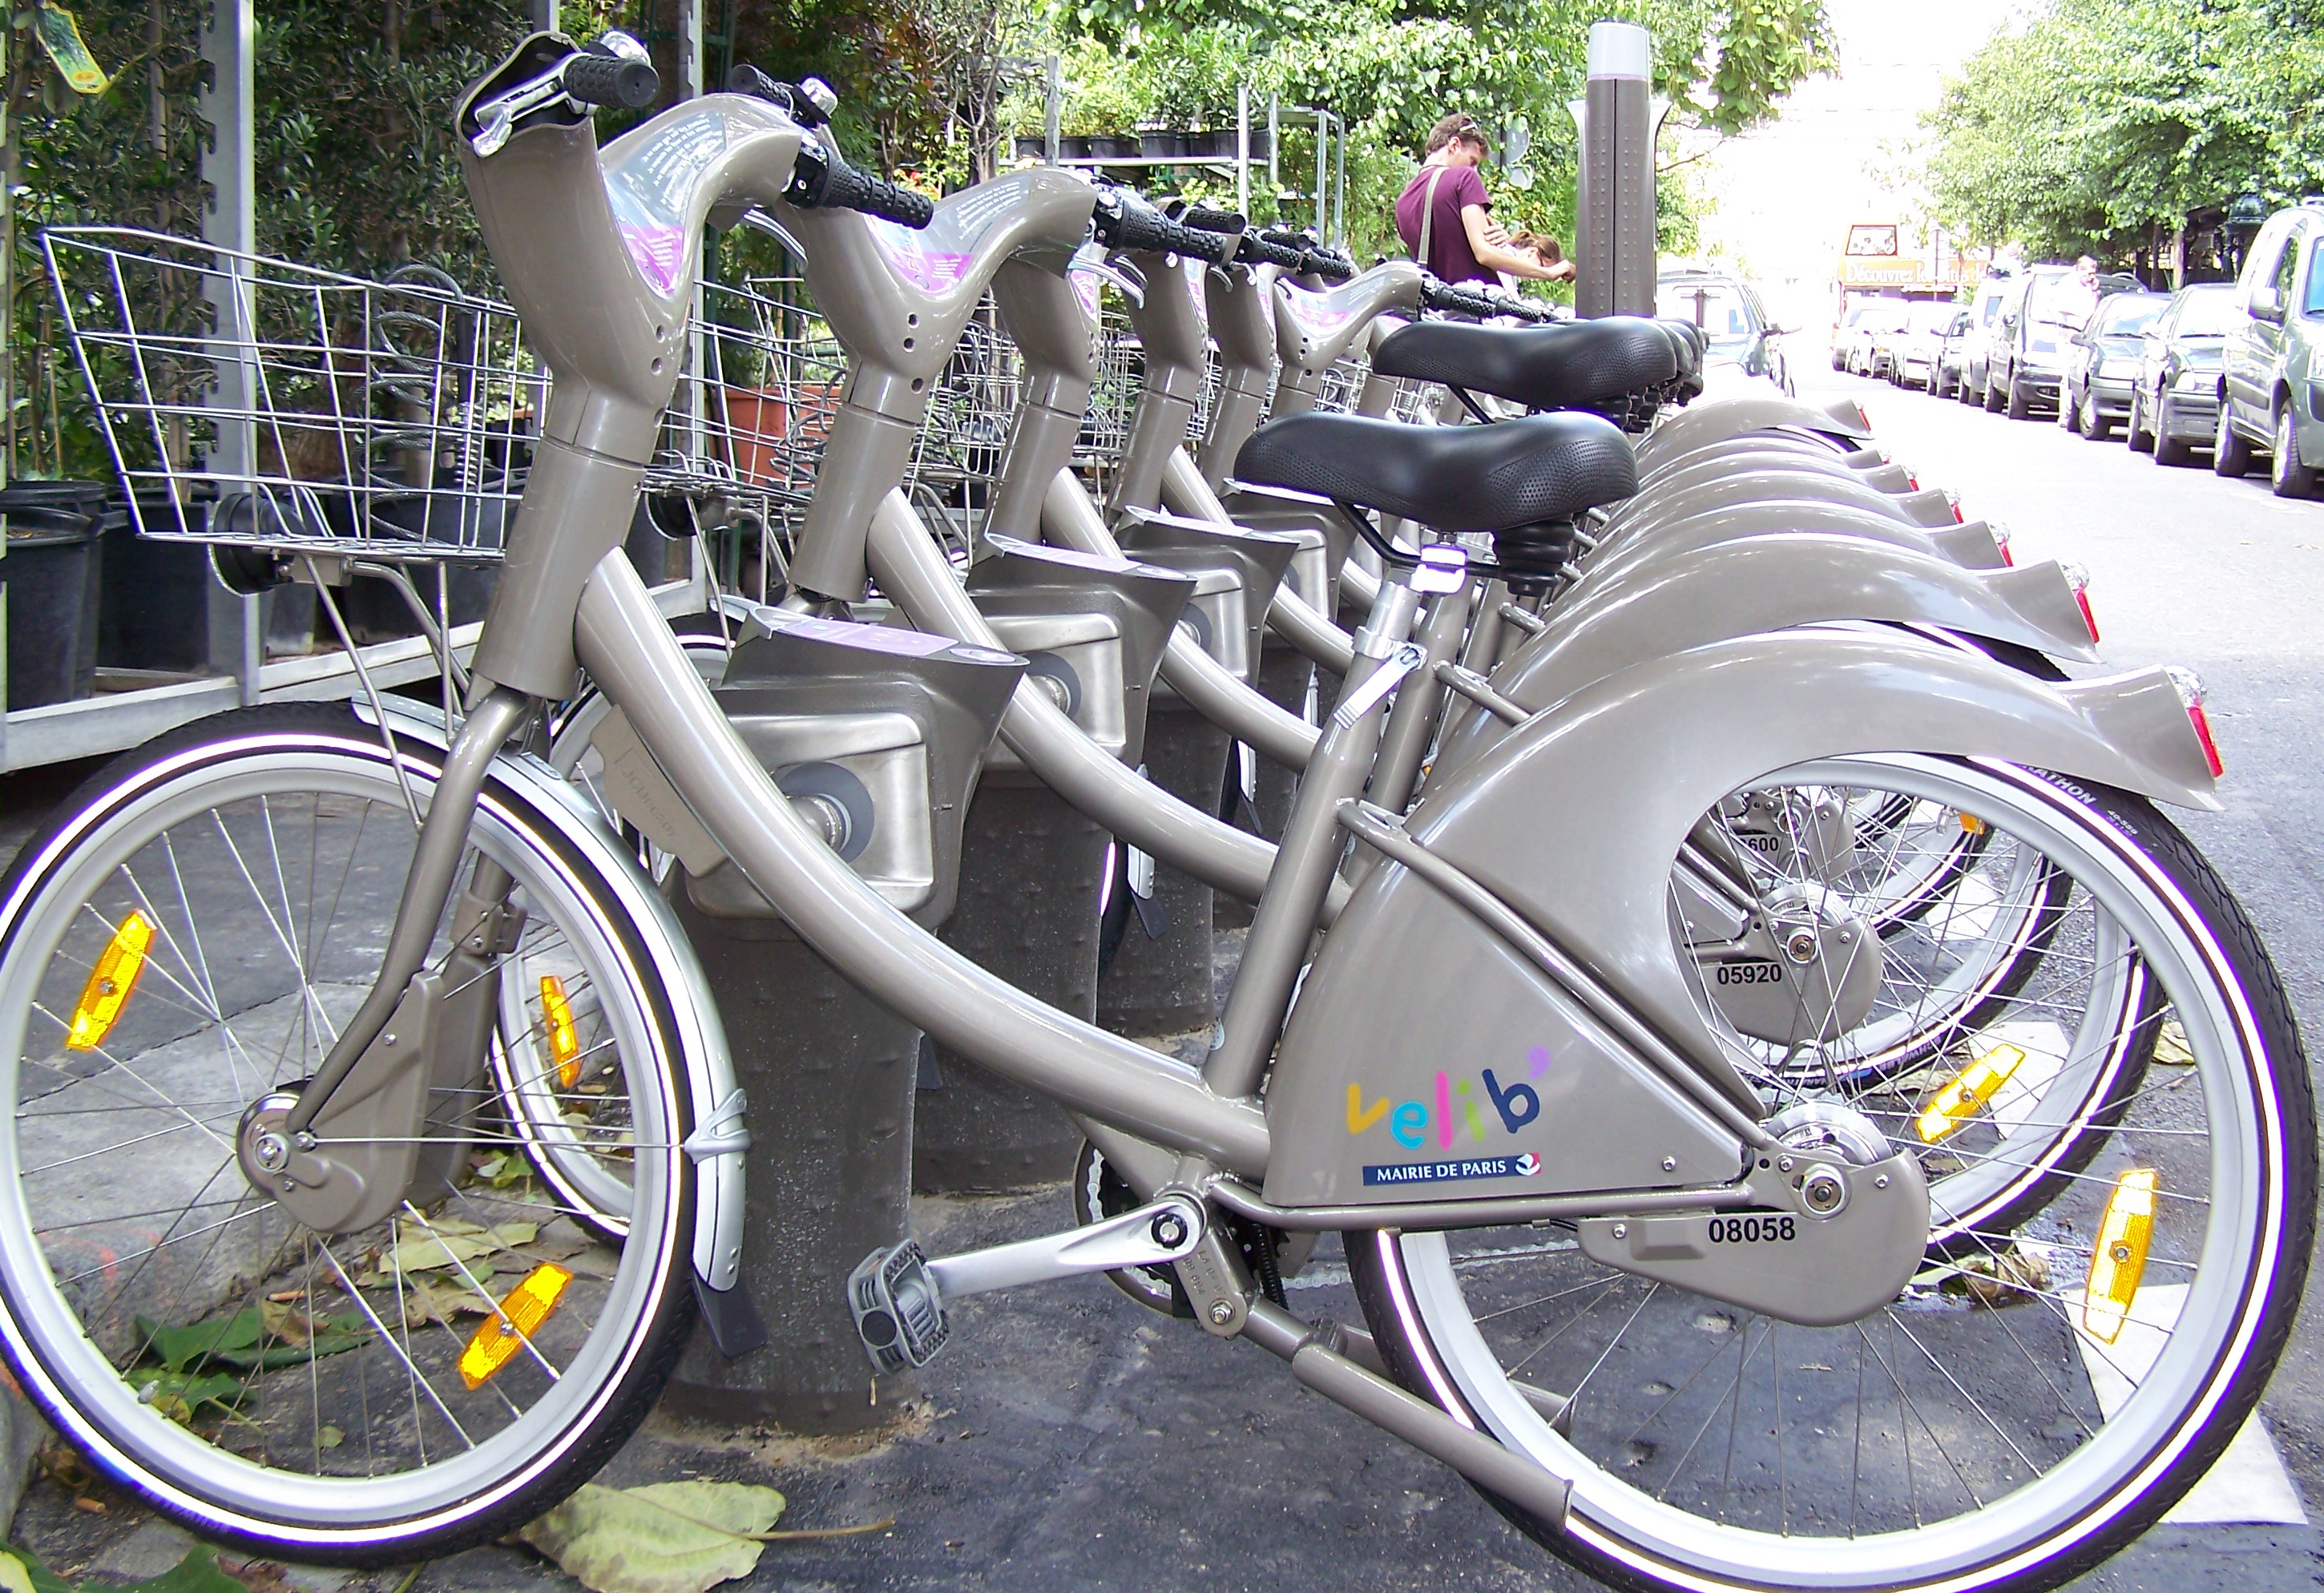 Bikes In Paris France distinctive grey bicycles